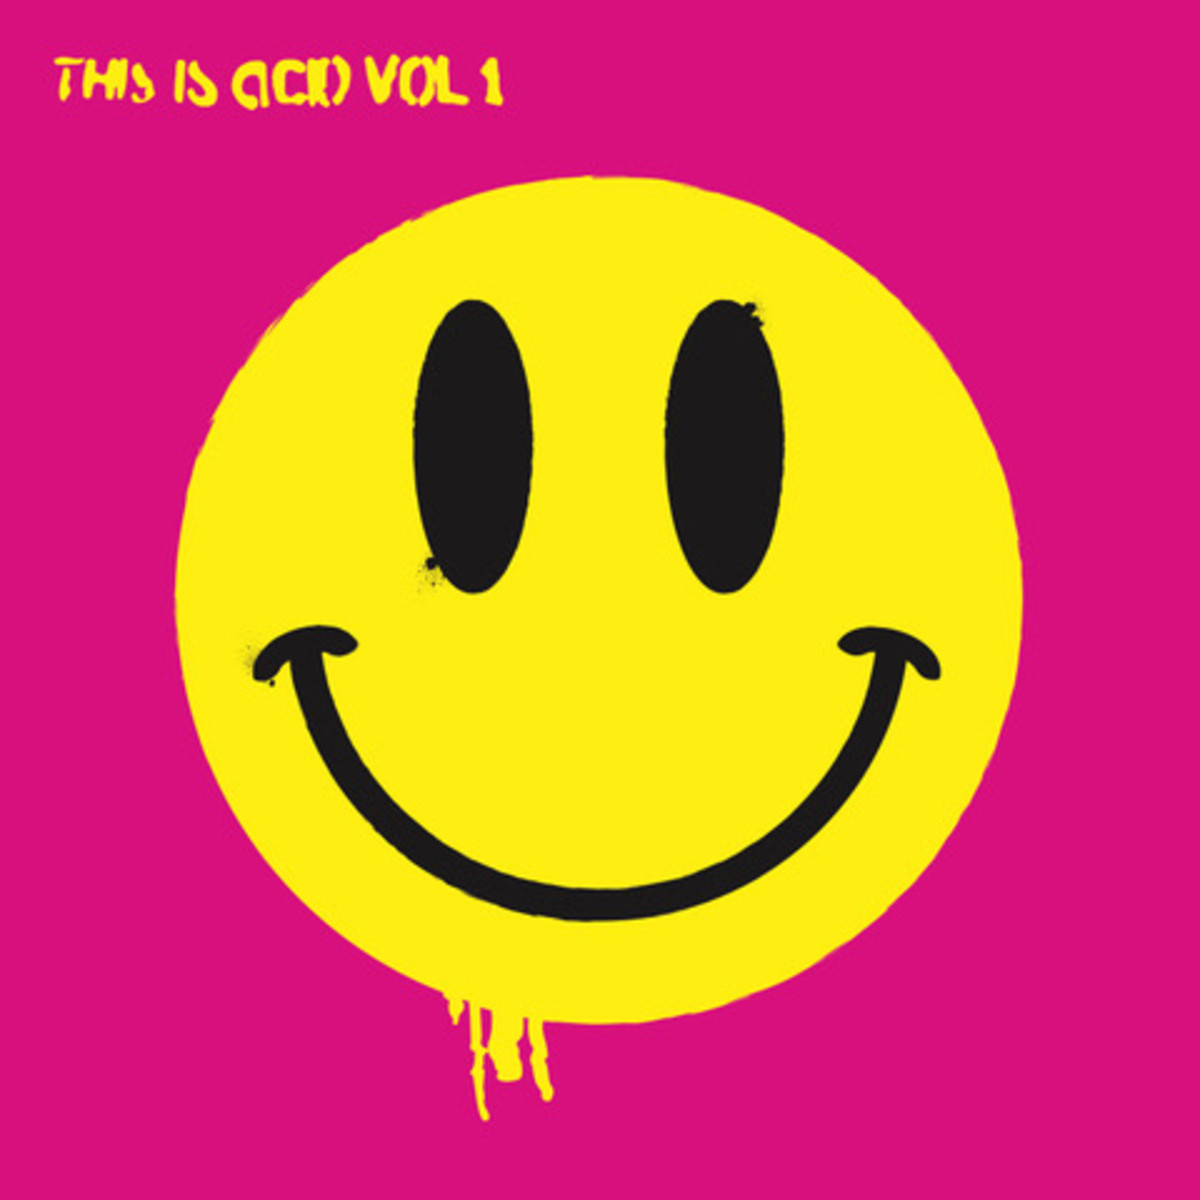 This Is Acid Vol 1 Artwork